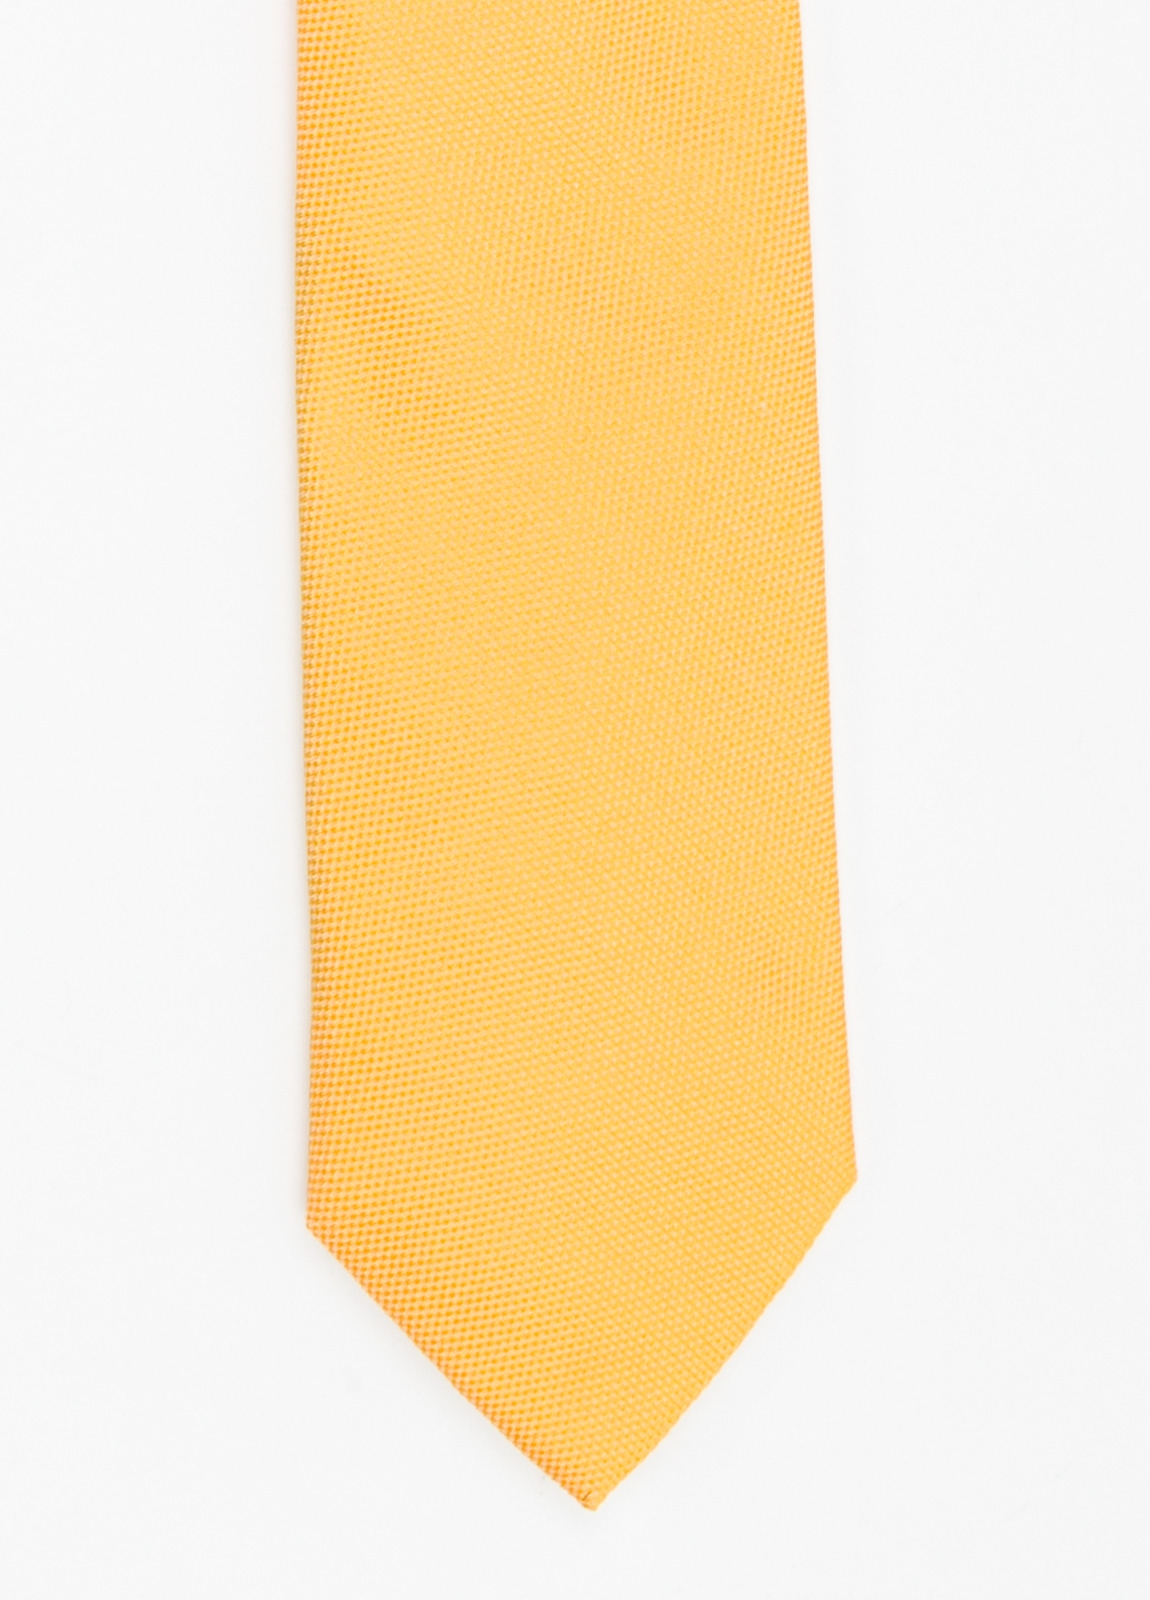 Corbata Formal Wear microtextura color azul amarillo. Pala 7,5 cm. 100% Seda.